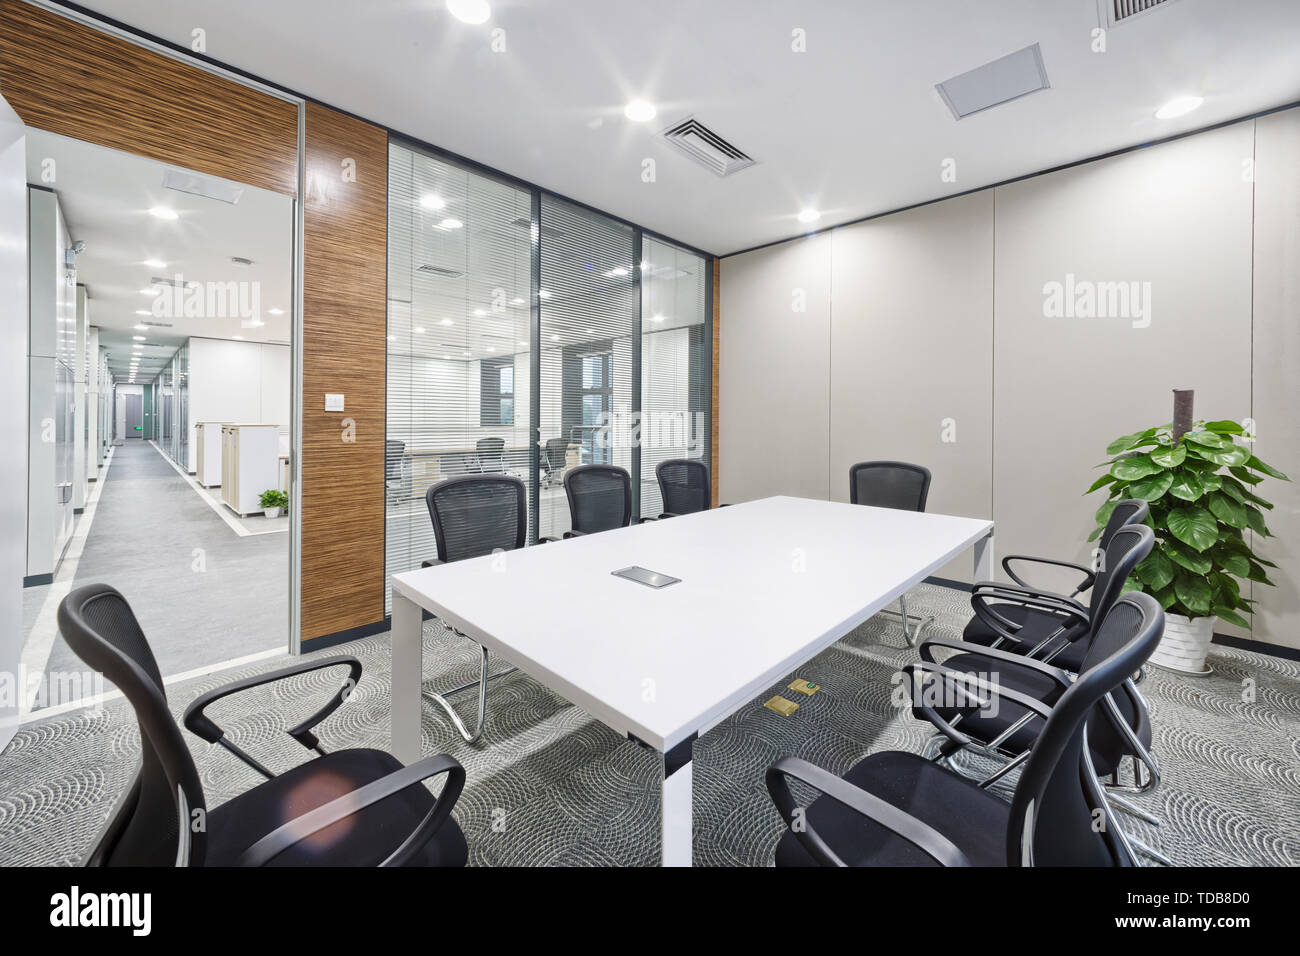 modern office meeting room interior - Stock Image